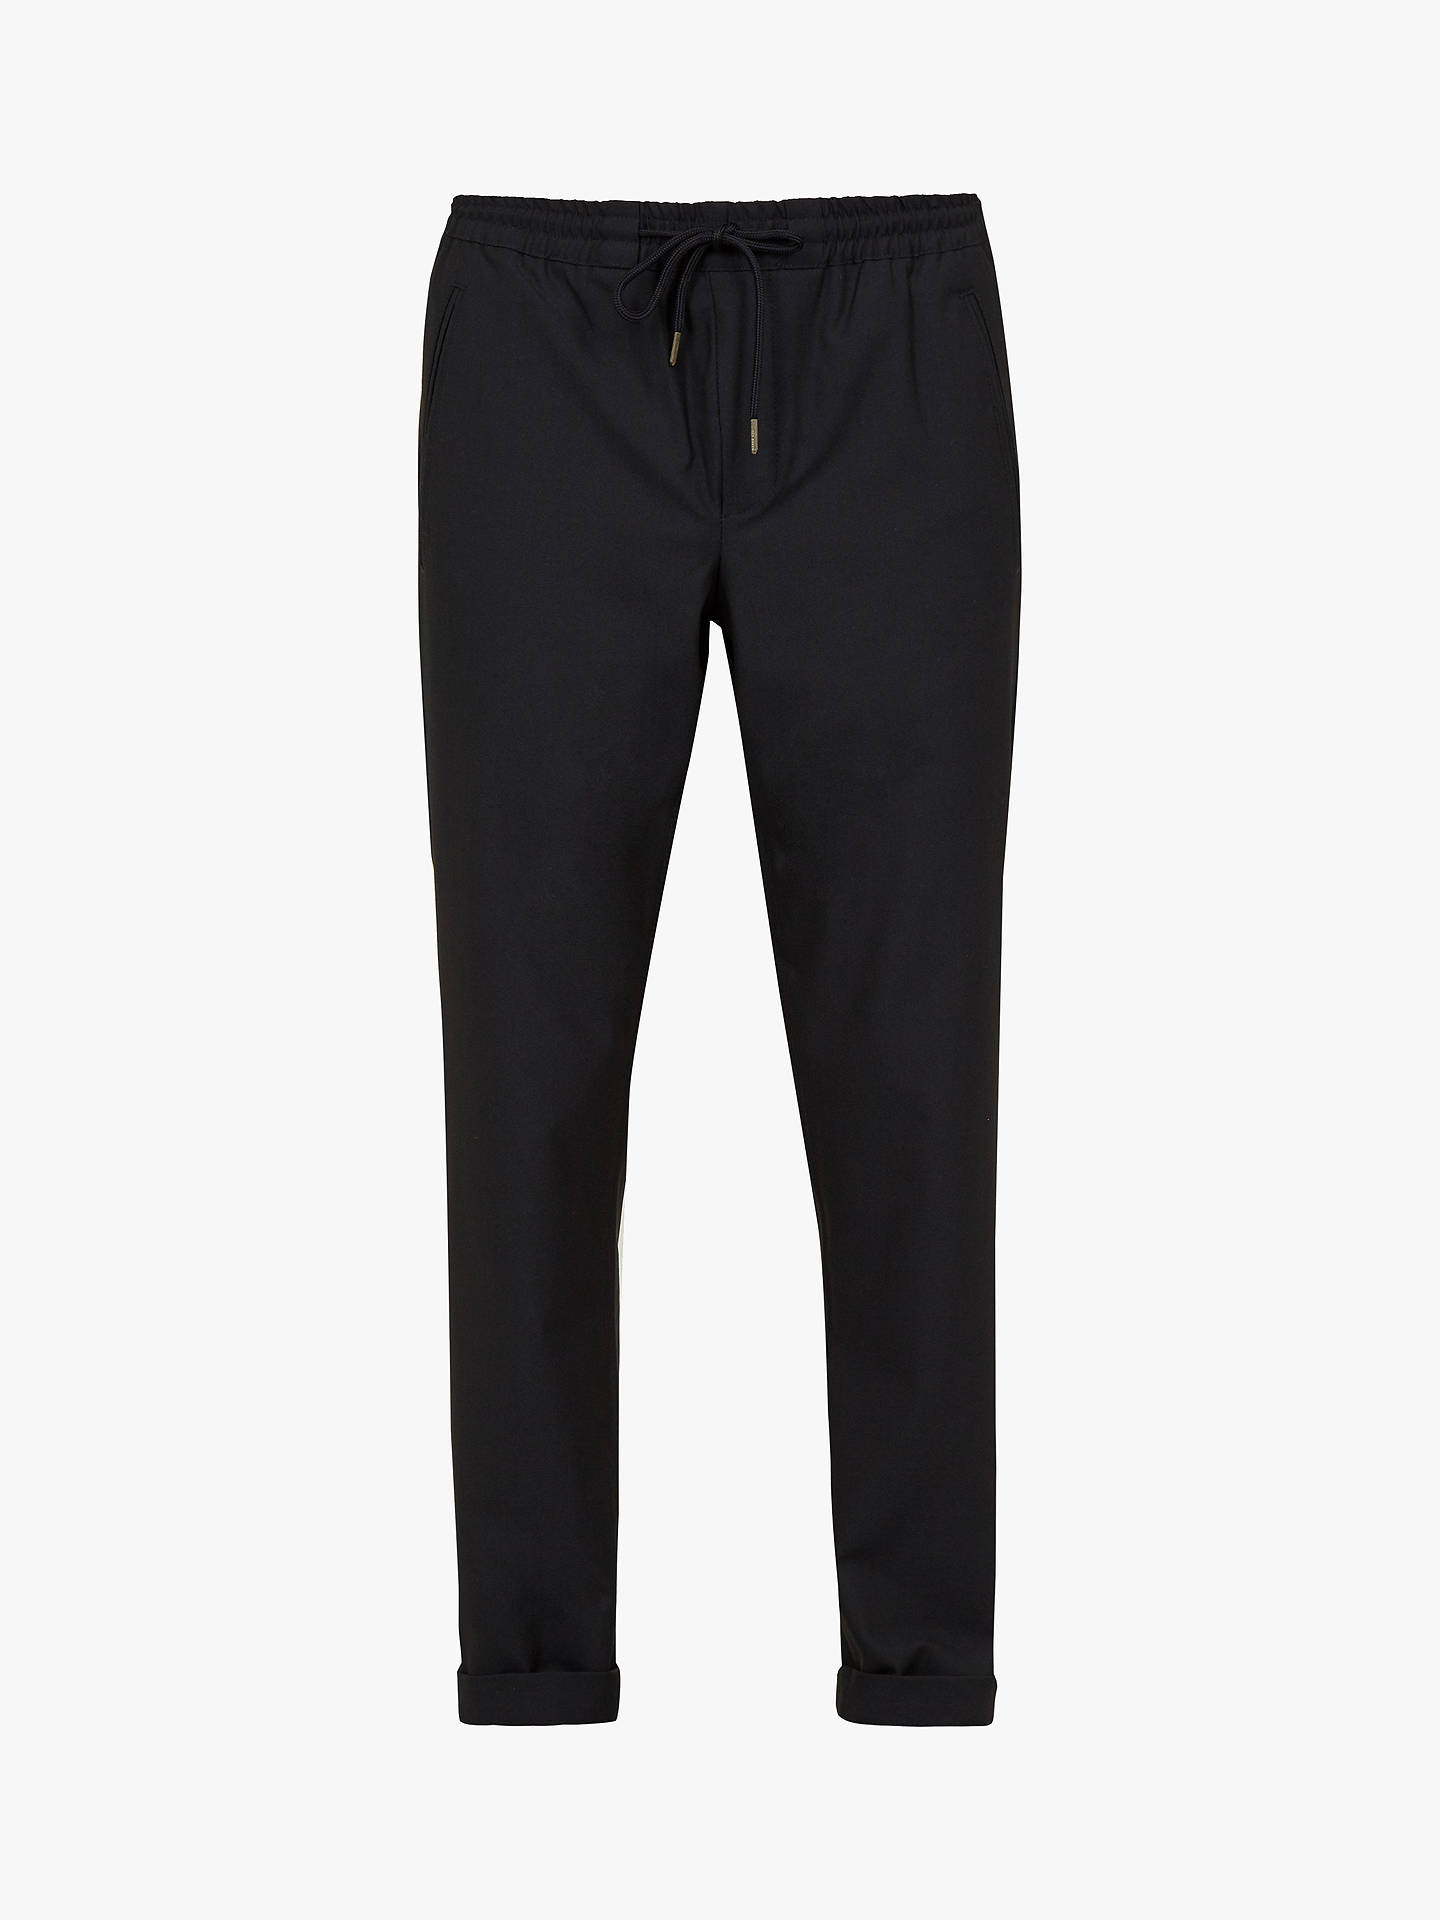 BuyTed Baker Ribcuff Slim Ribbed Cuff Trousers, Navy Blue, 32R Online at johnlewis.com